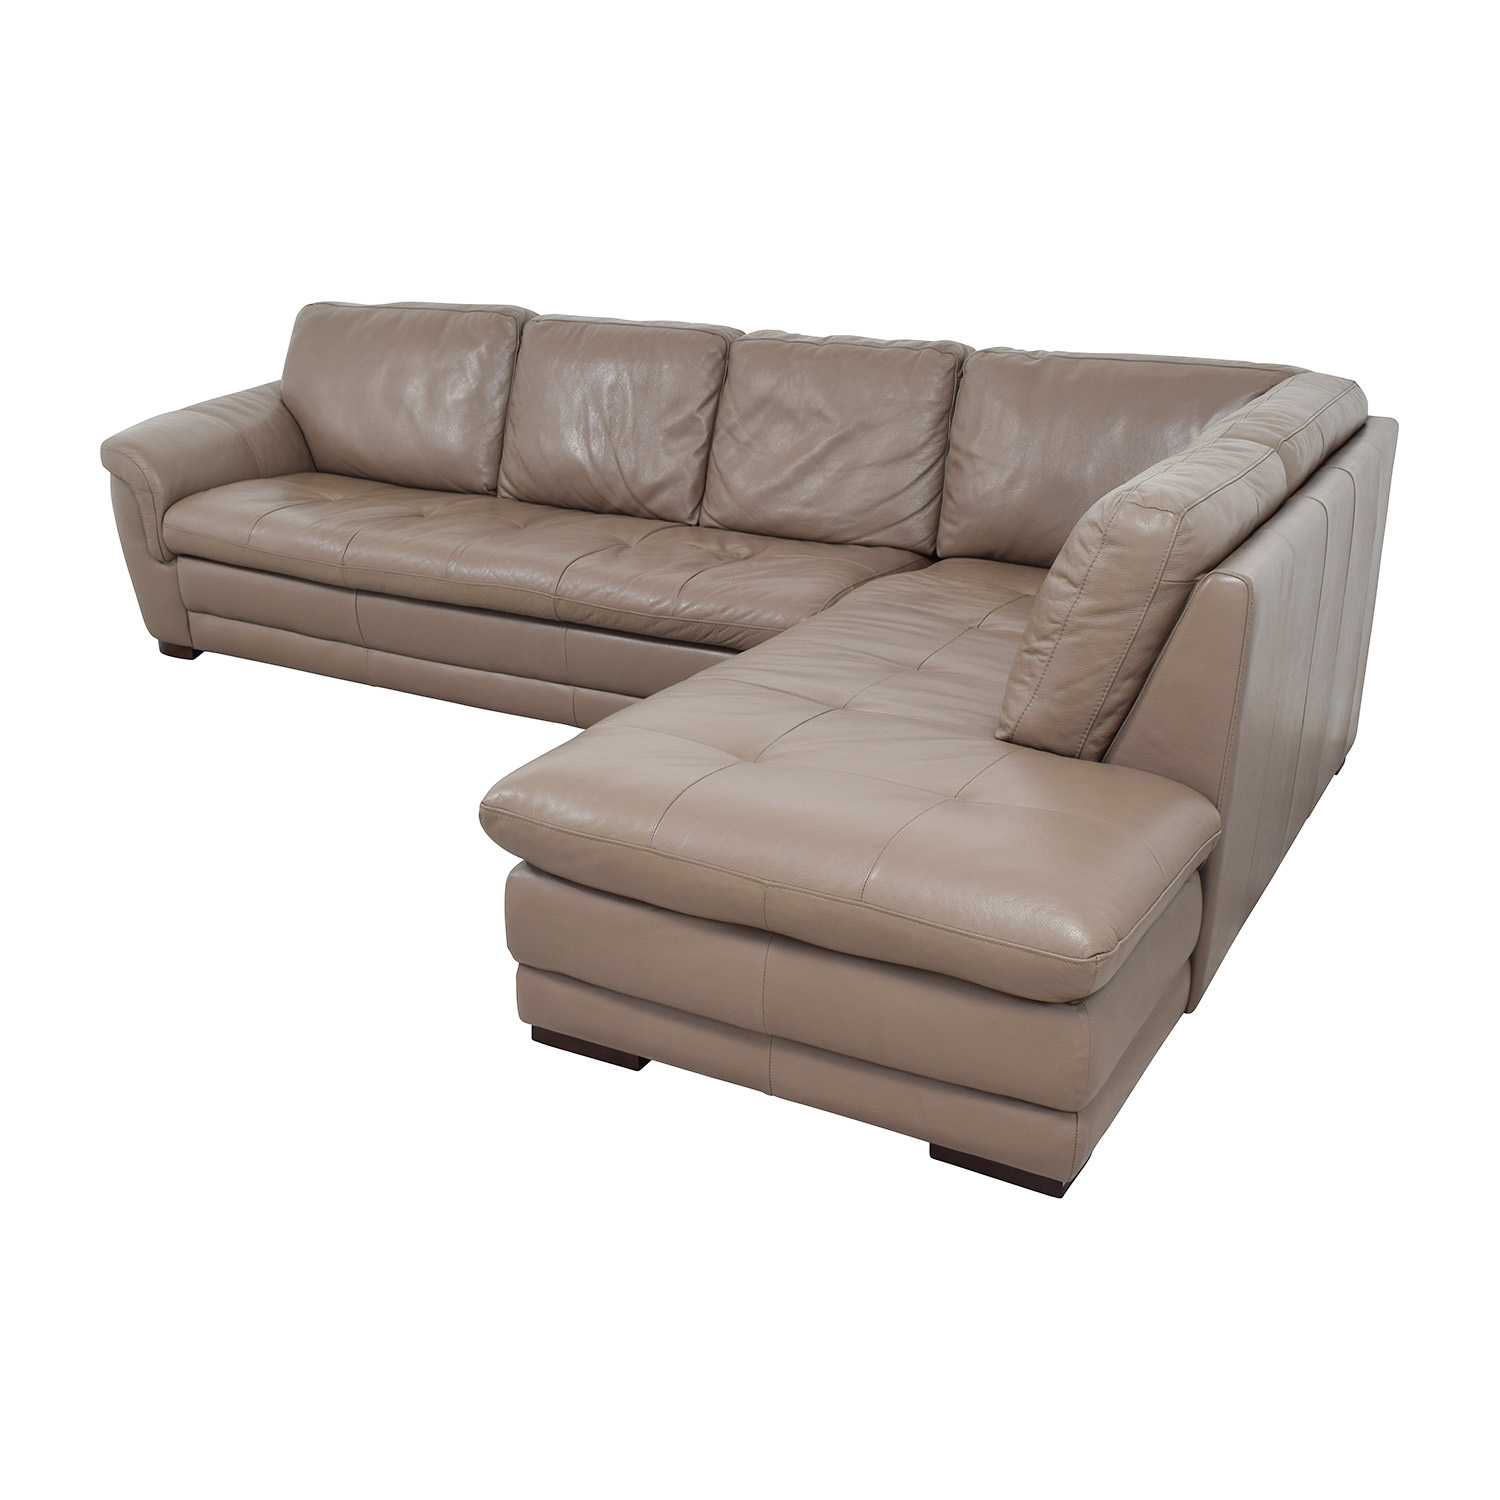 74% OFF Raymour and Flanigan Raymour & Flanigan Tan Tufted